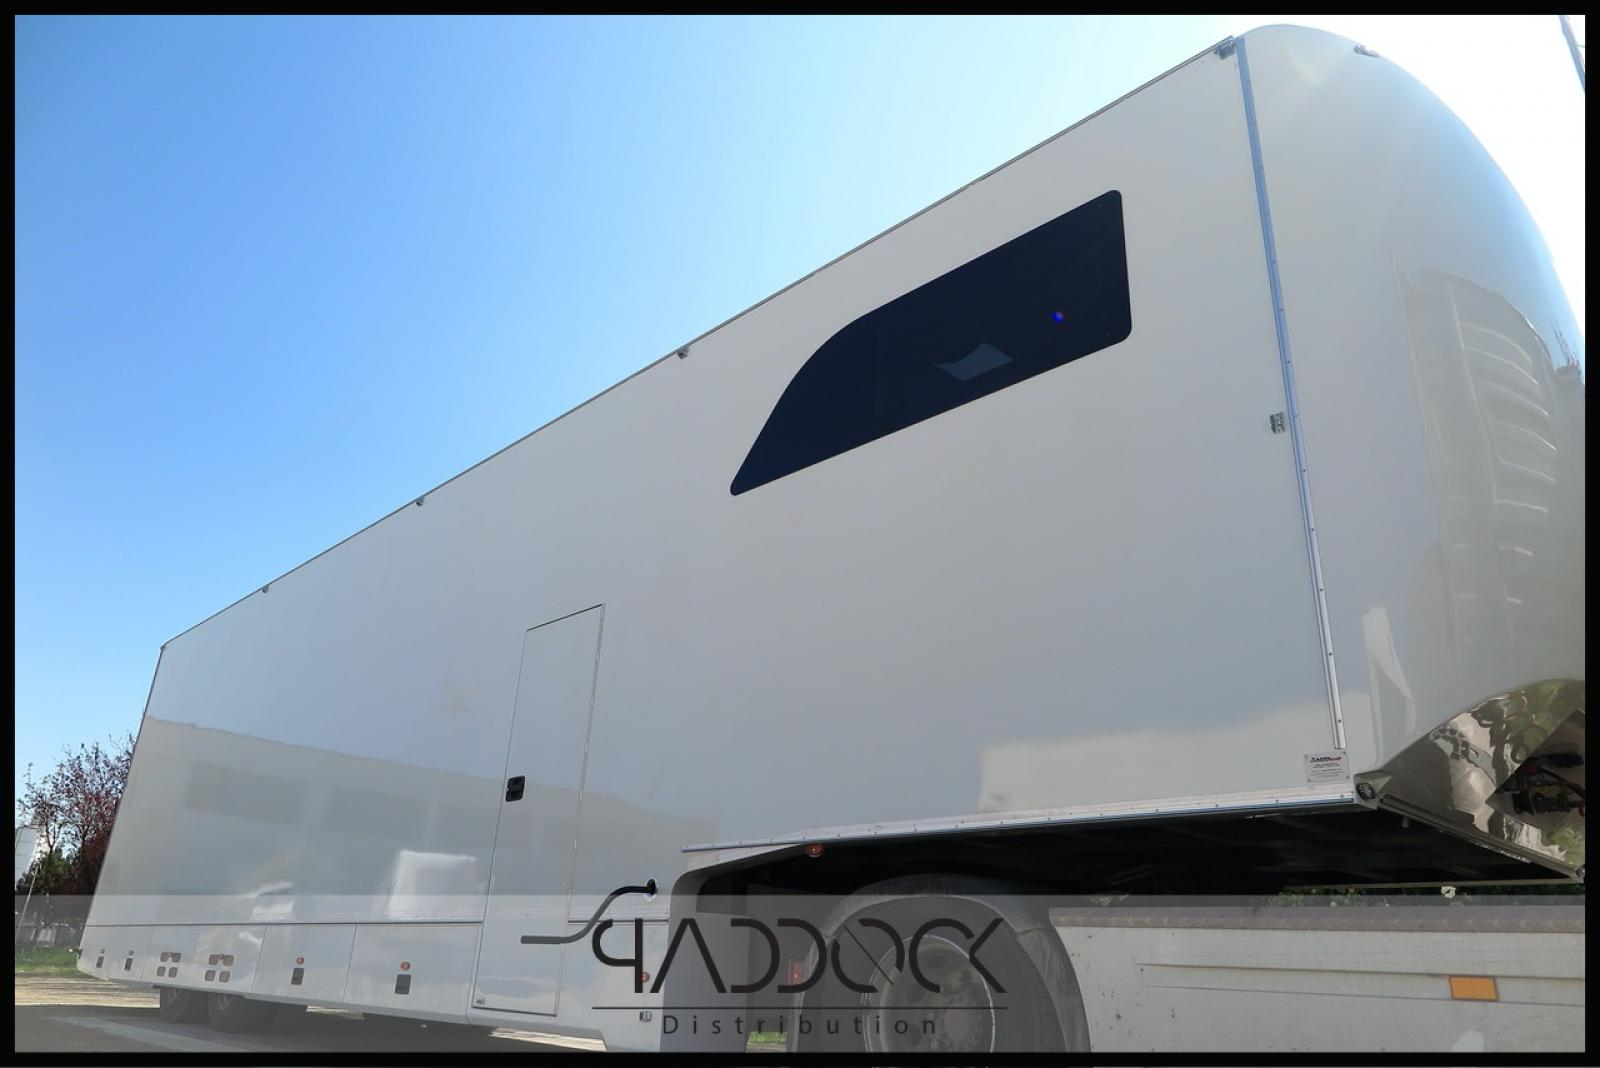 USED TRAILER ASTA CAR Z2 BY PADDOCK DISTRIBUTION - 2